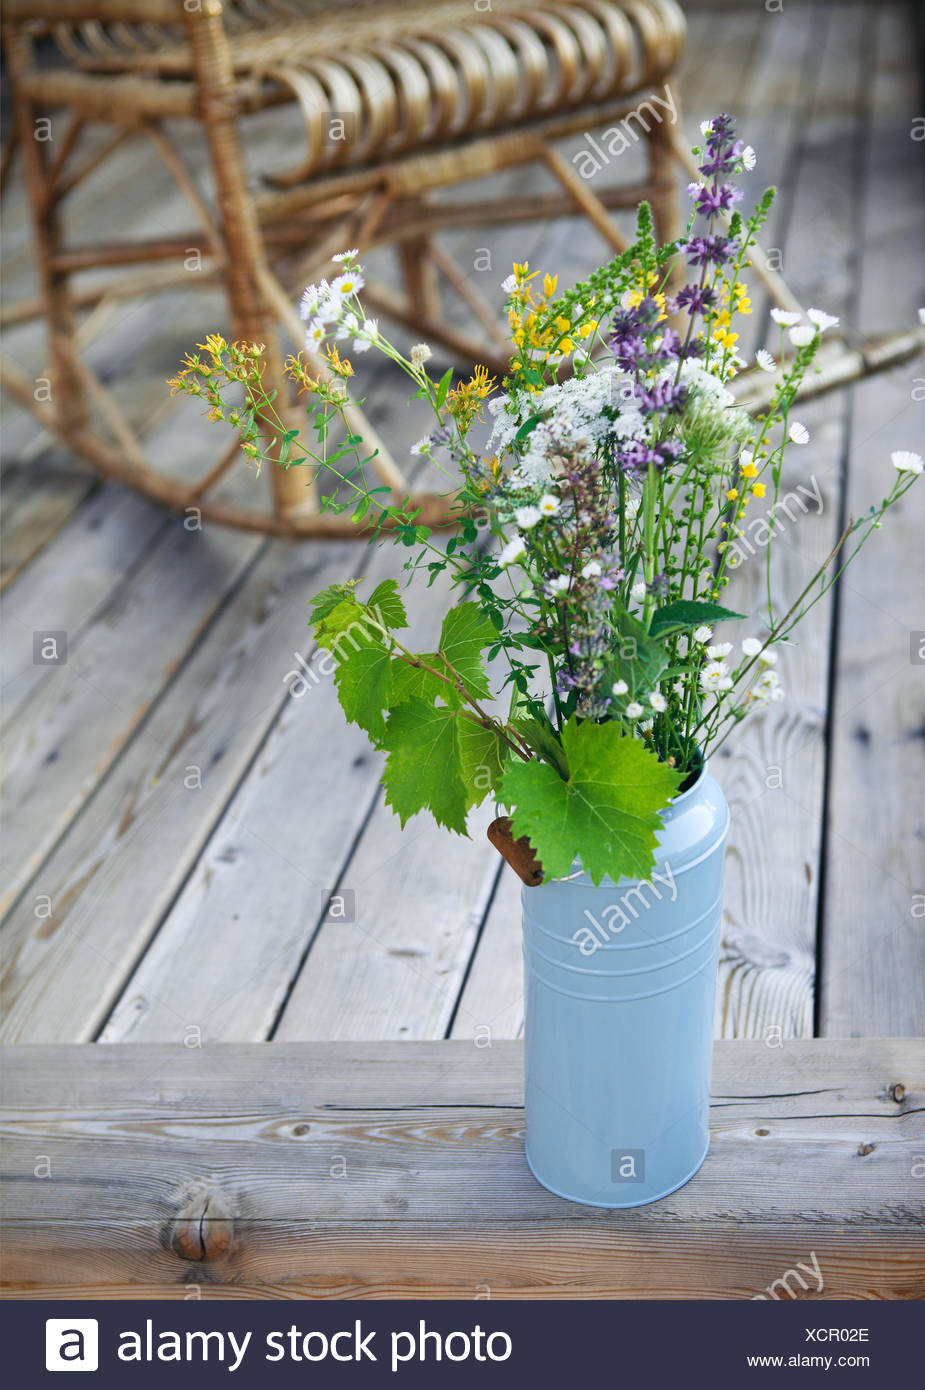 Bright yellow and blue flowers on porch - Stock Image